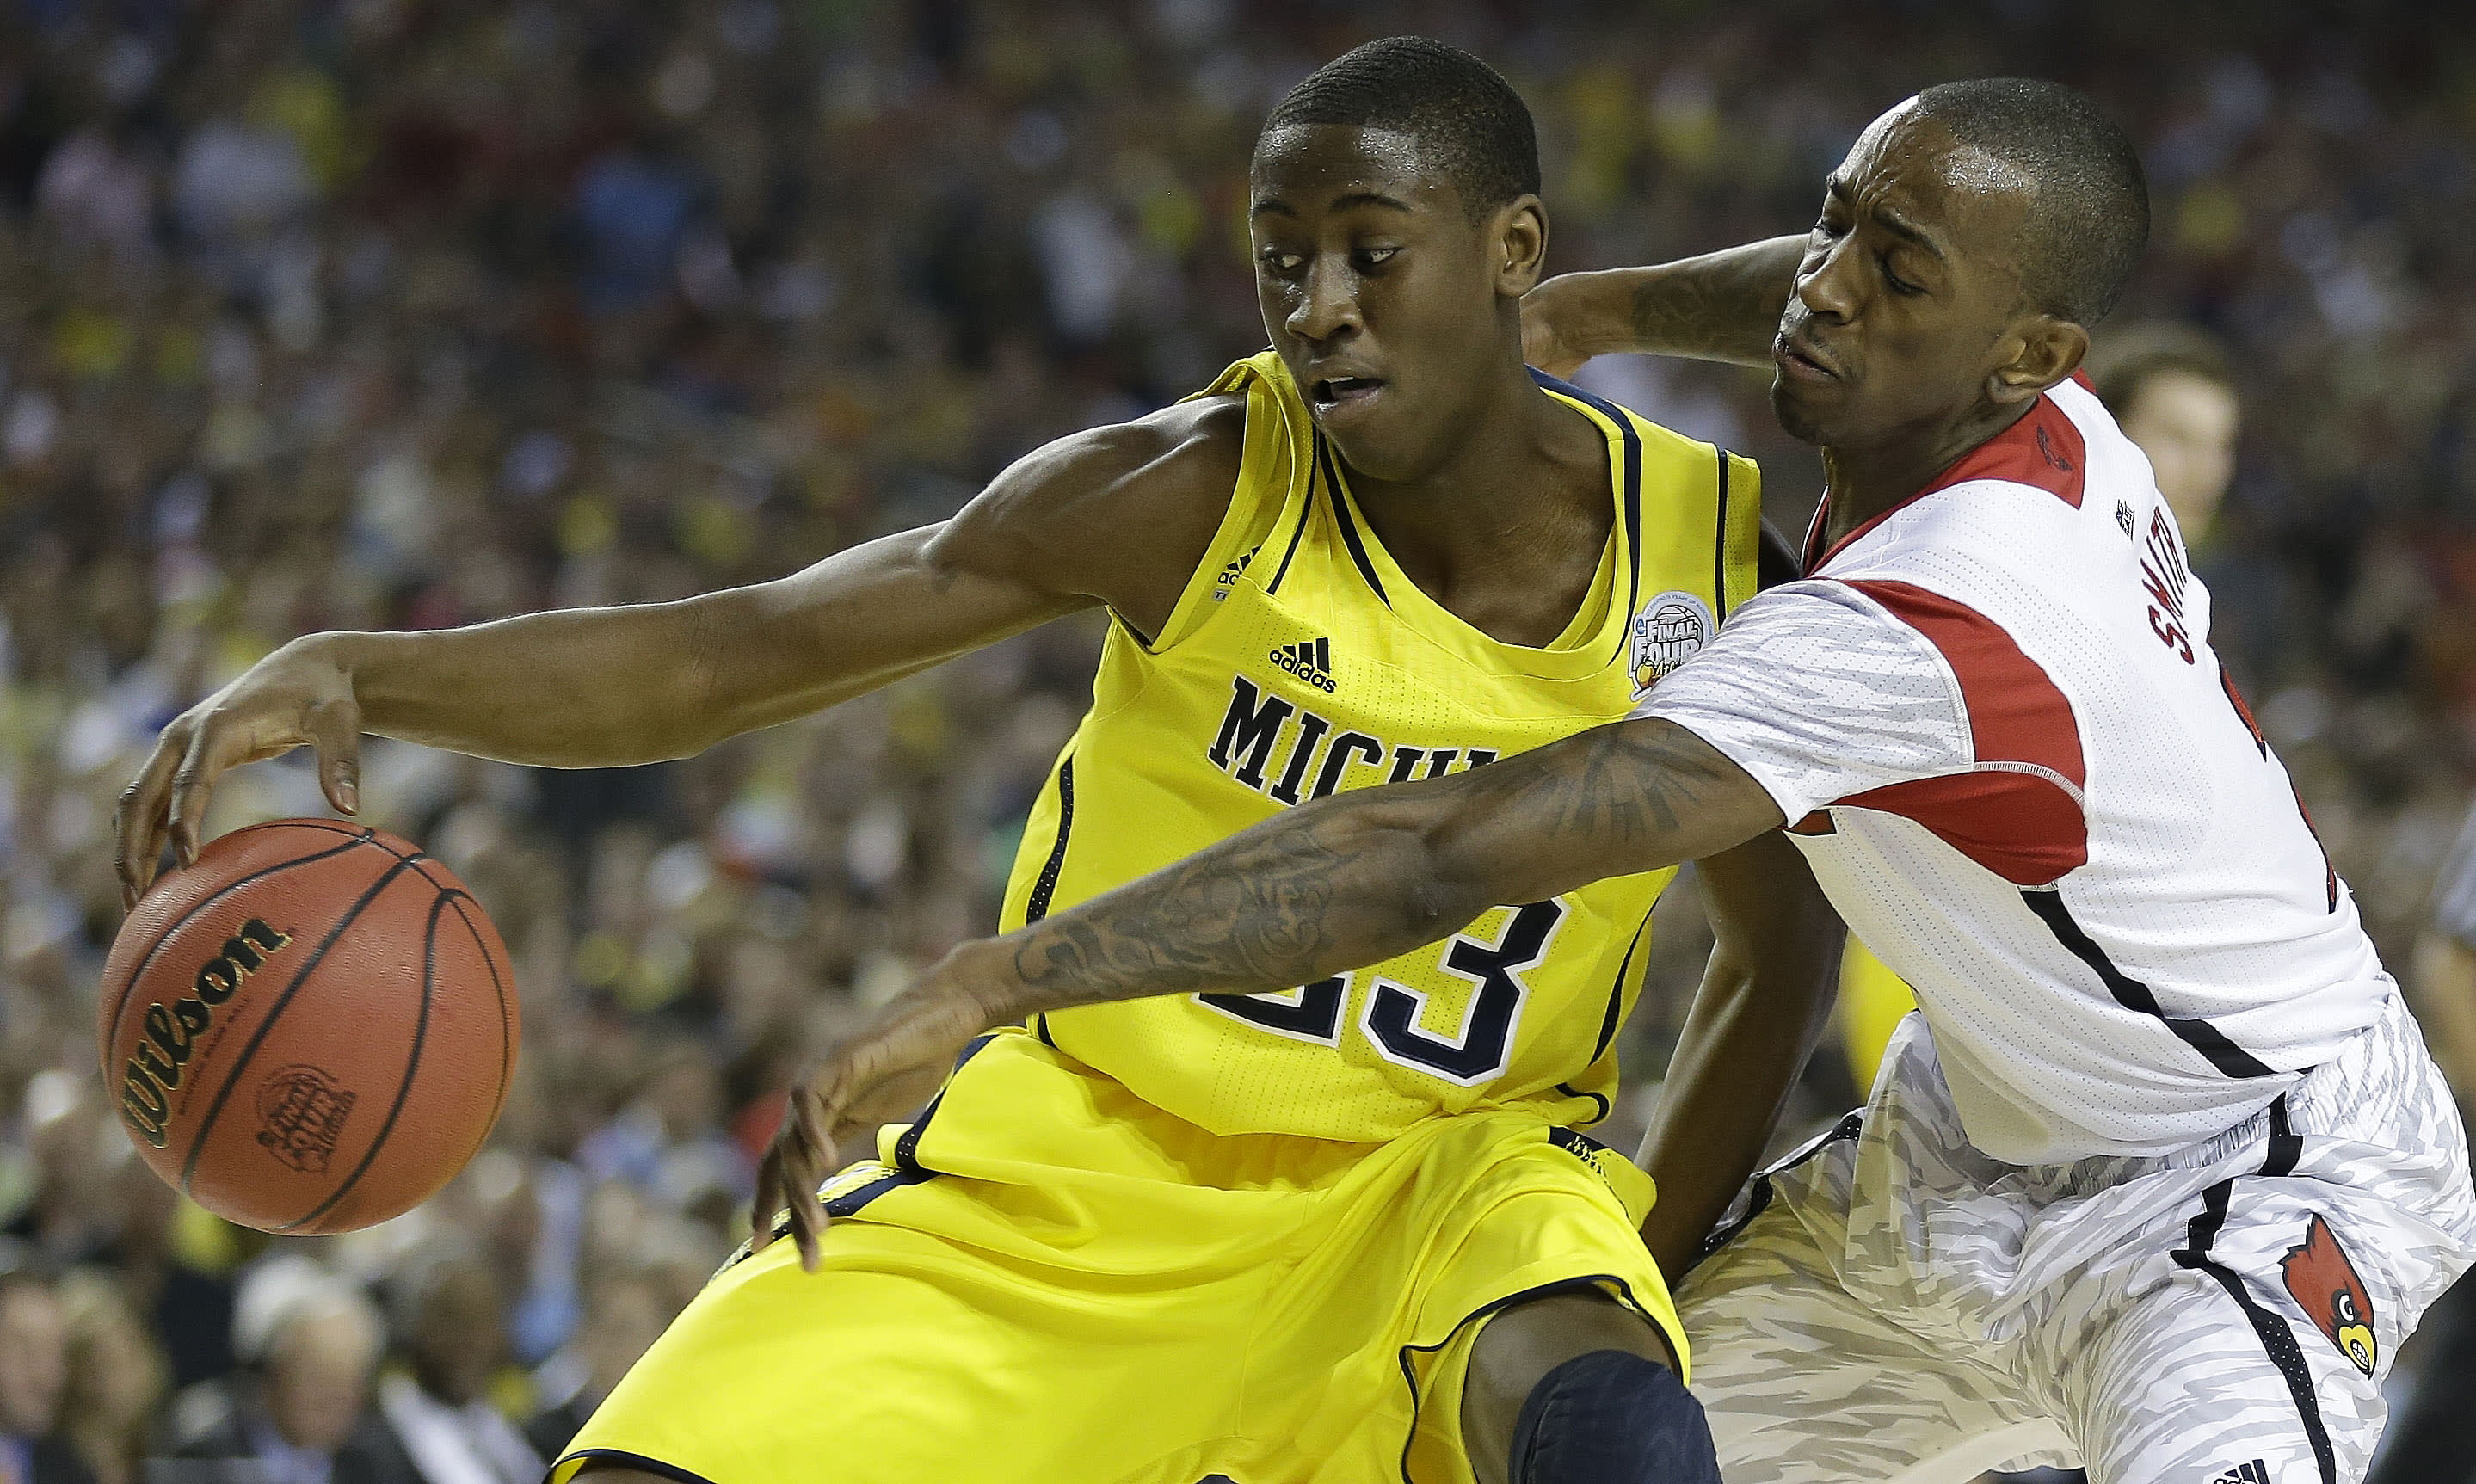 Louisville guard Russ Smith (2) and Michigan guard Caris LeVert (23) vie for a loose ball during the first half of the NCAA Final Four tournament college basketball championship game Monday, April 8, 2013, in Atlanta. (AP Photo/Charlie Neibergall)